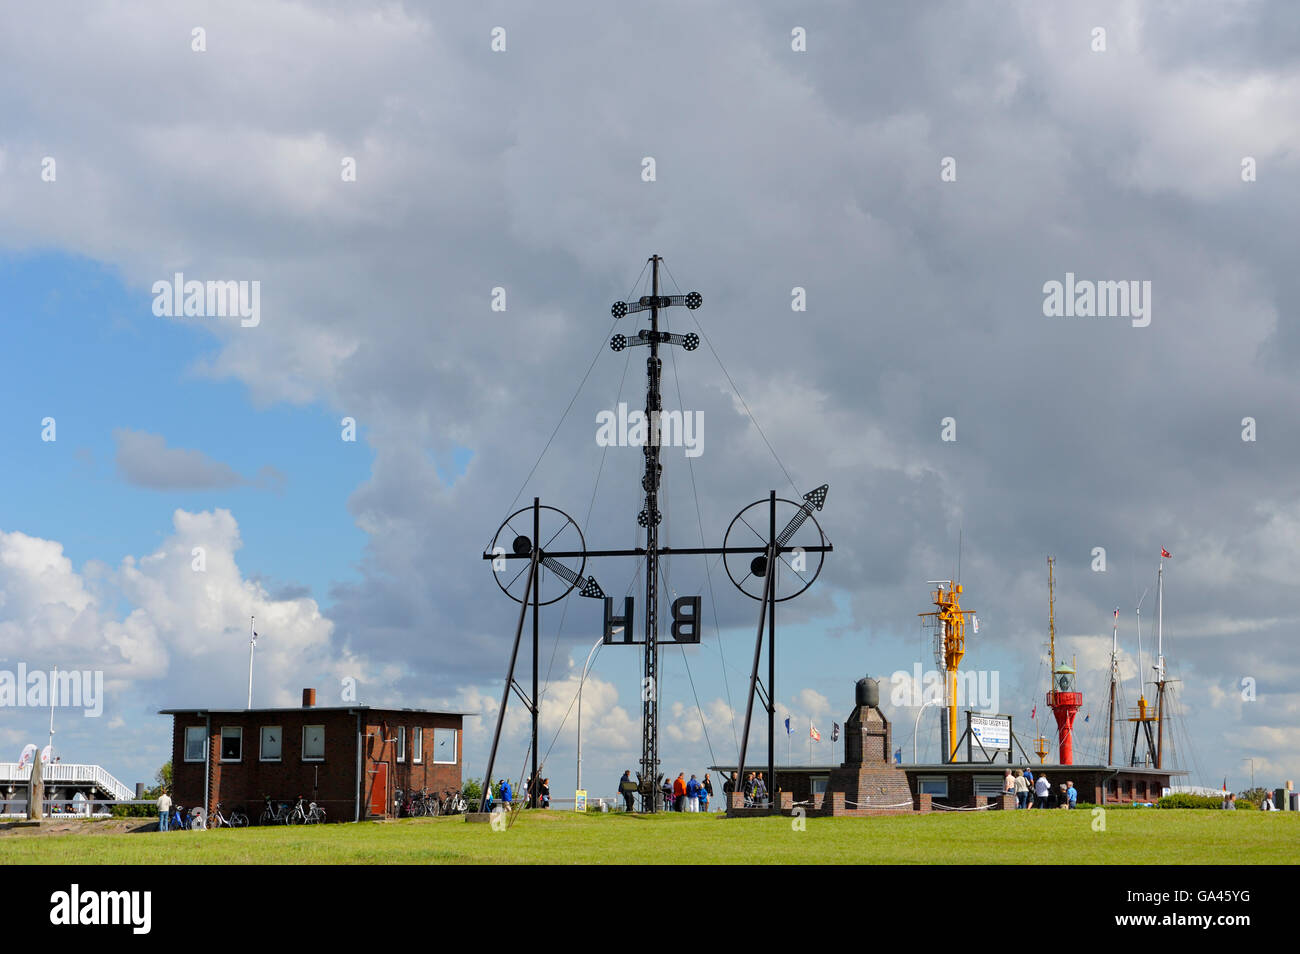 Monument, harbour, Cuxhaven, Germany - Stock Image